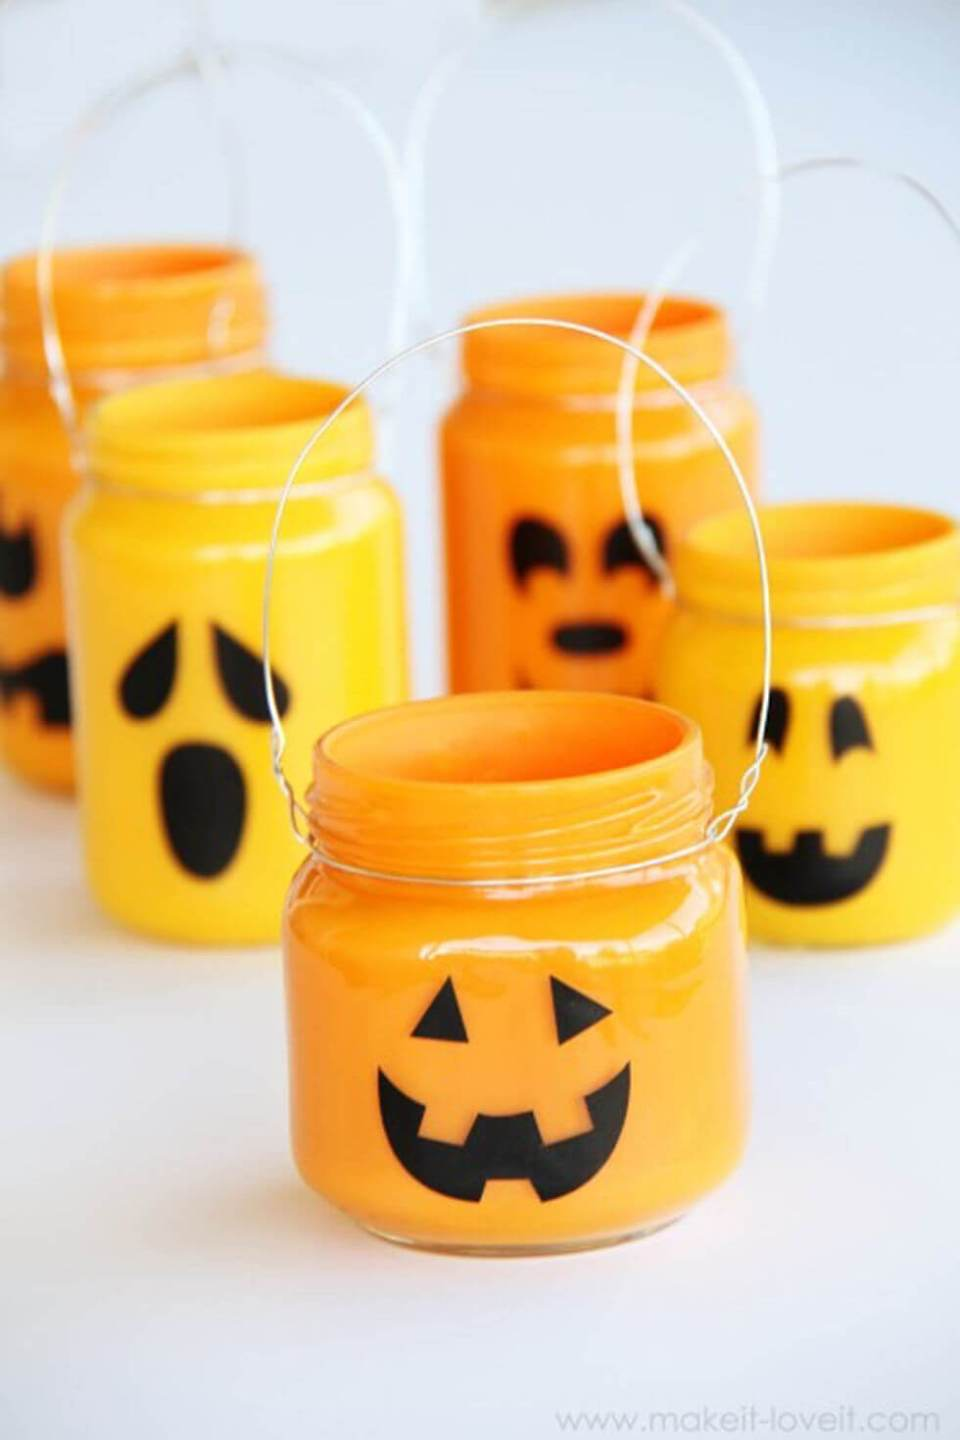 DIY Mason Jar Halloween Crafts: Cute Painted Mason Jar Jack-O-Lanterns